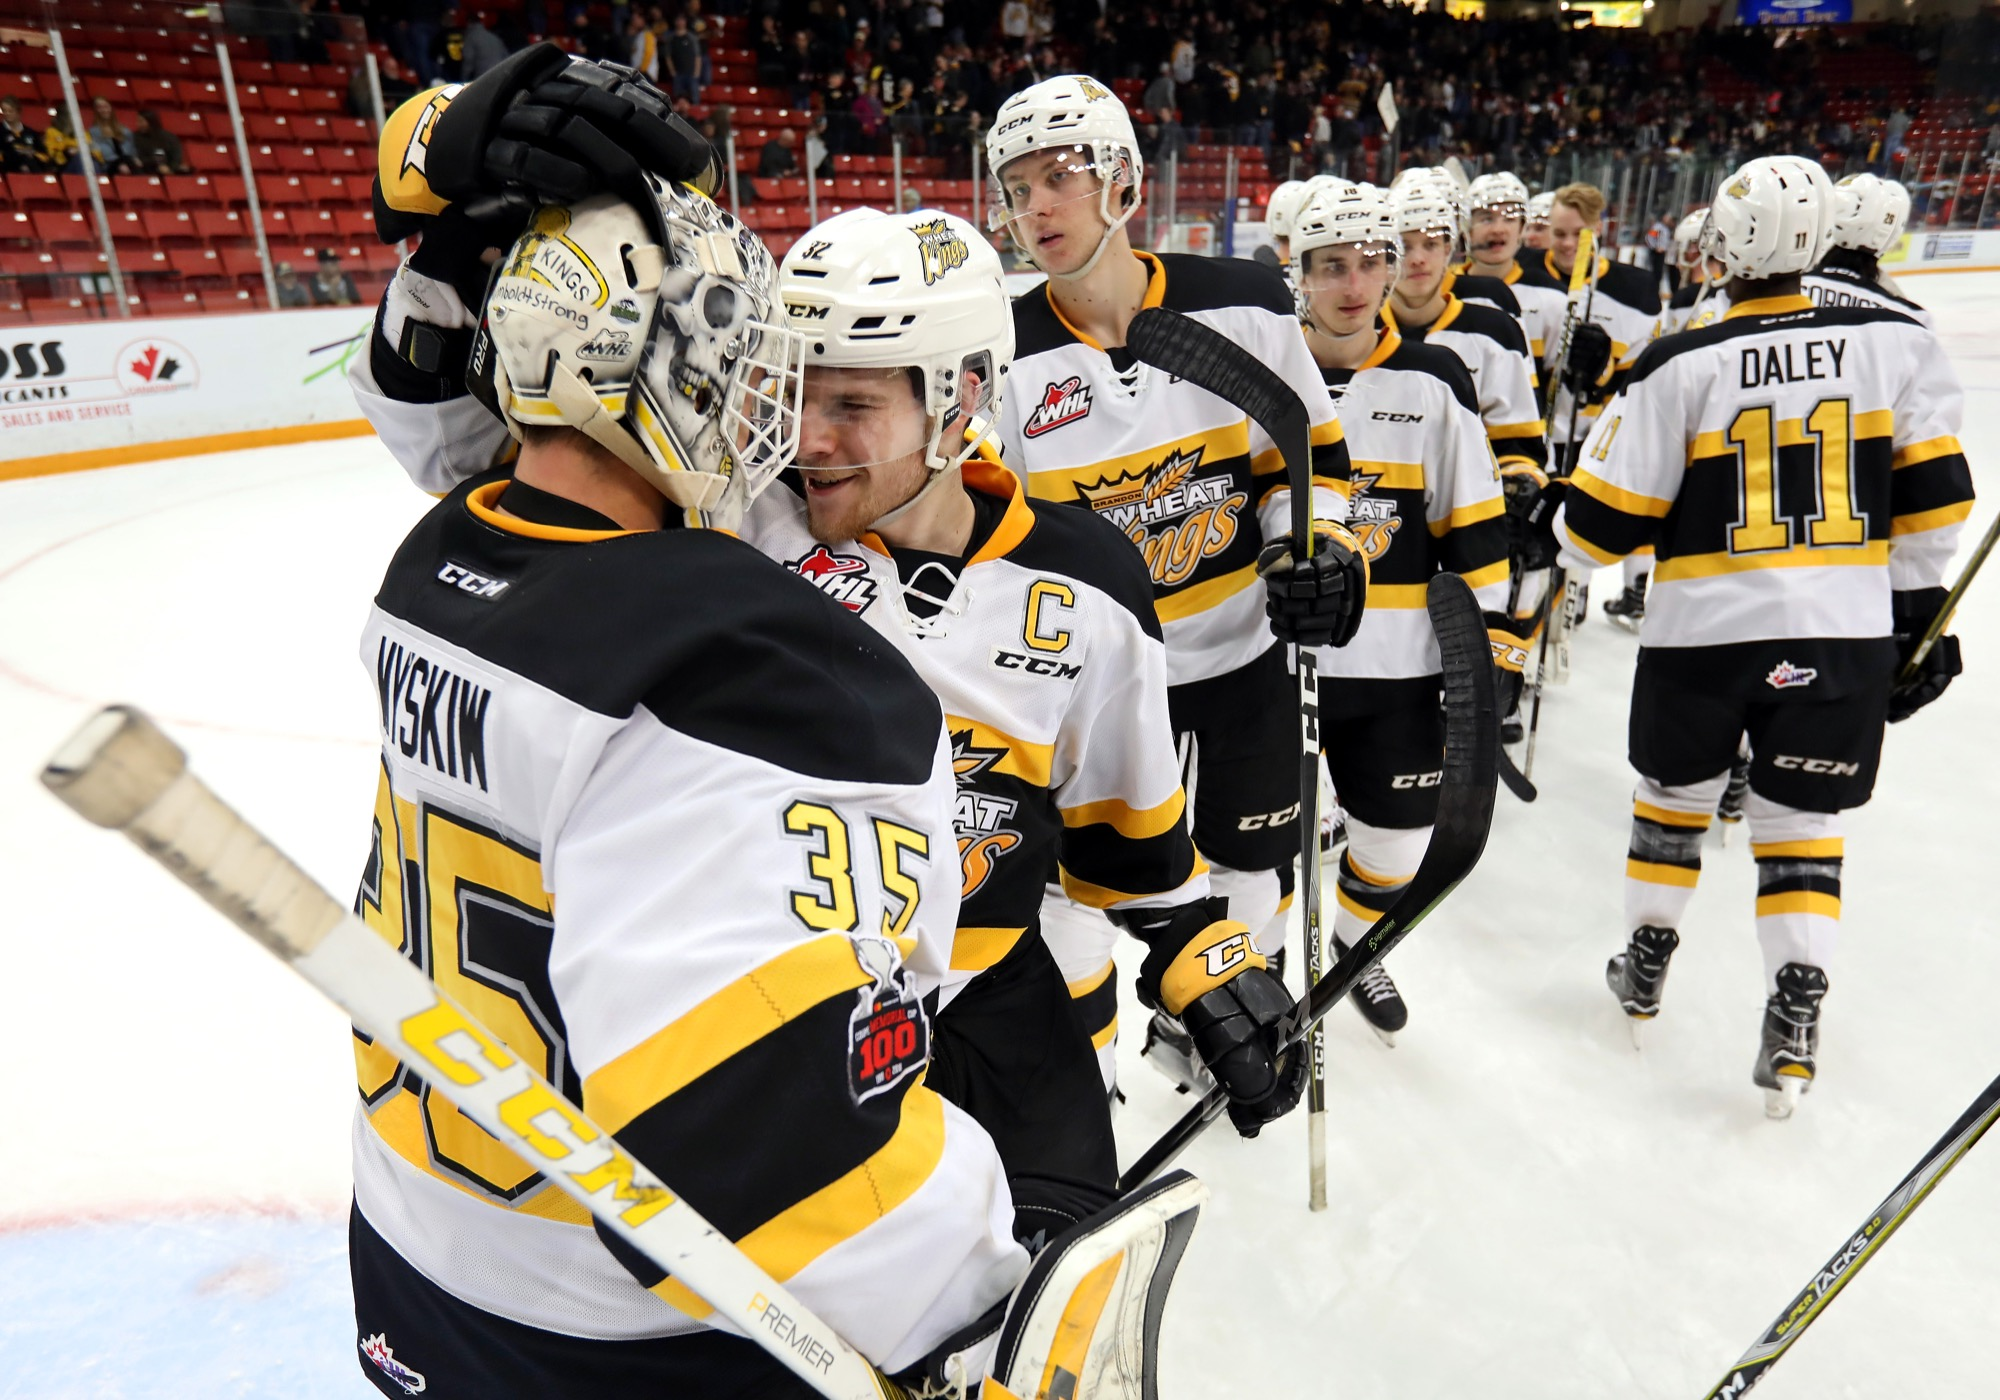 Defenceman James Shearer, seen congratulating Dylan Myskiw after a Western Hockey League playoff victory earlier this month, concluded his Western Hockey League career as the Brandon Wheat Kings' captain and is likely headed to university next season.